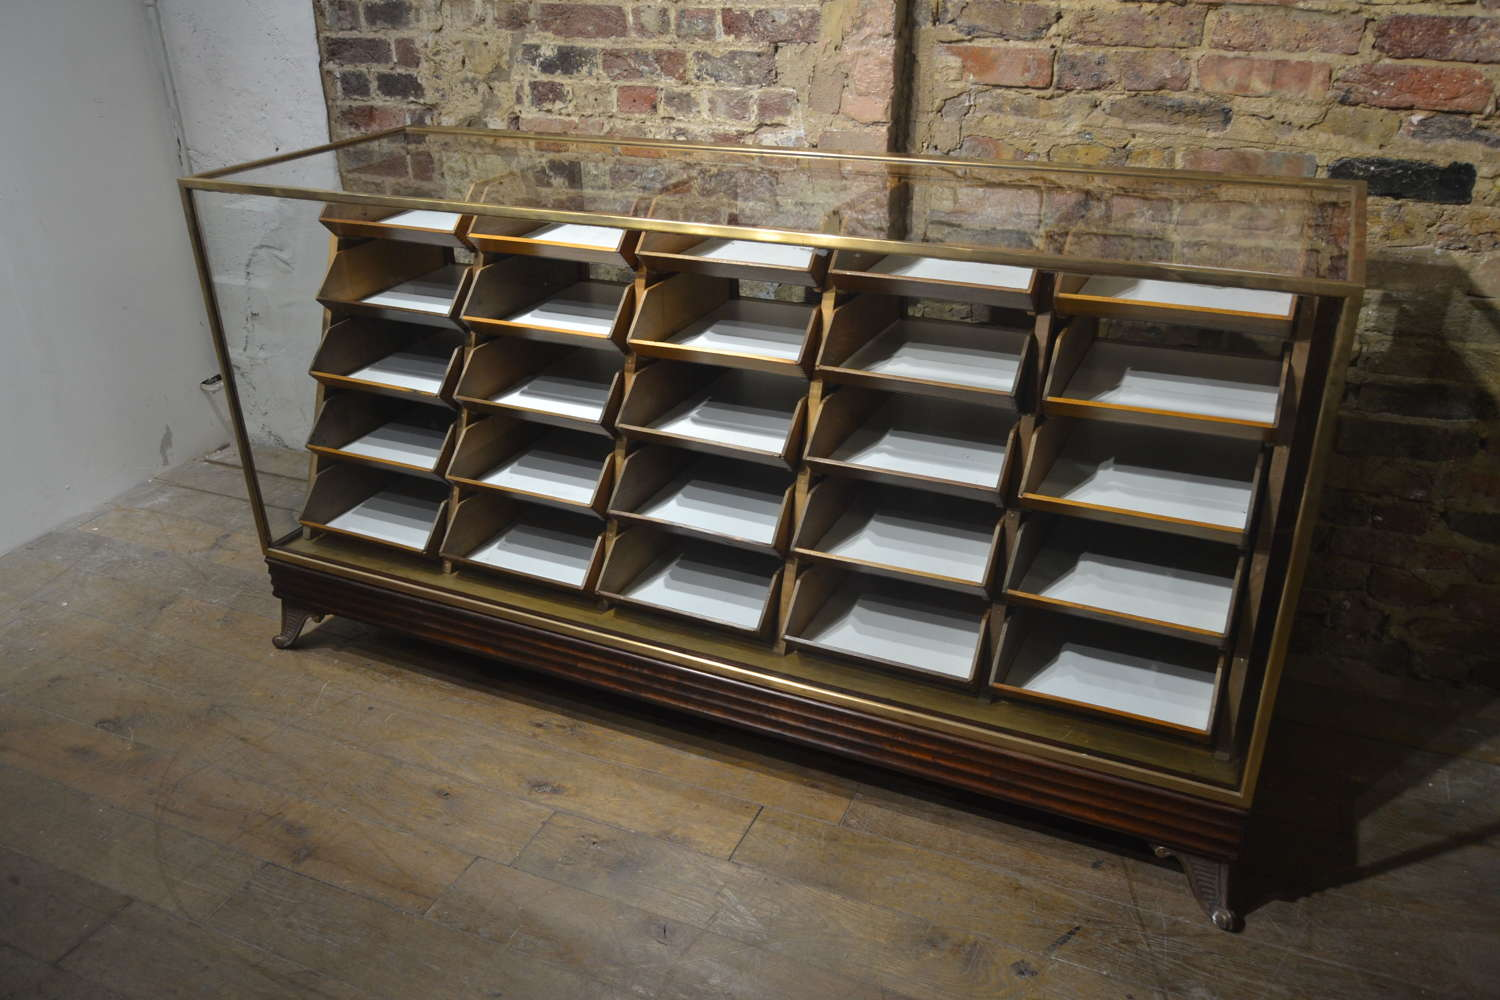 1920s Bronze Counter with Drawers